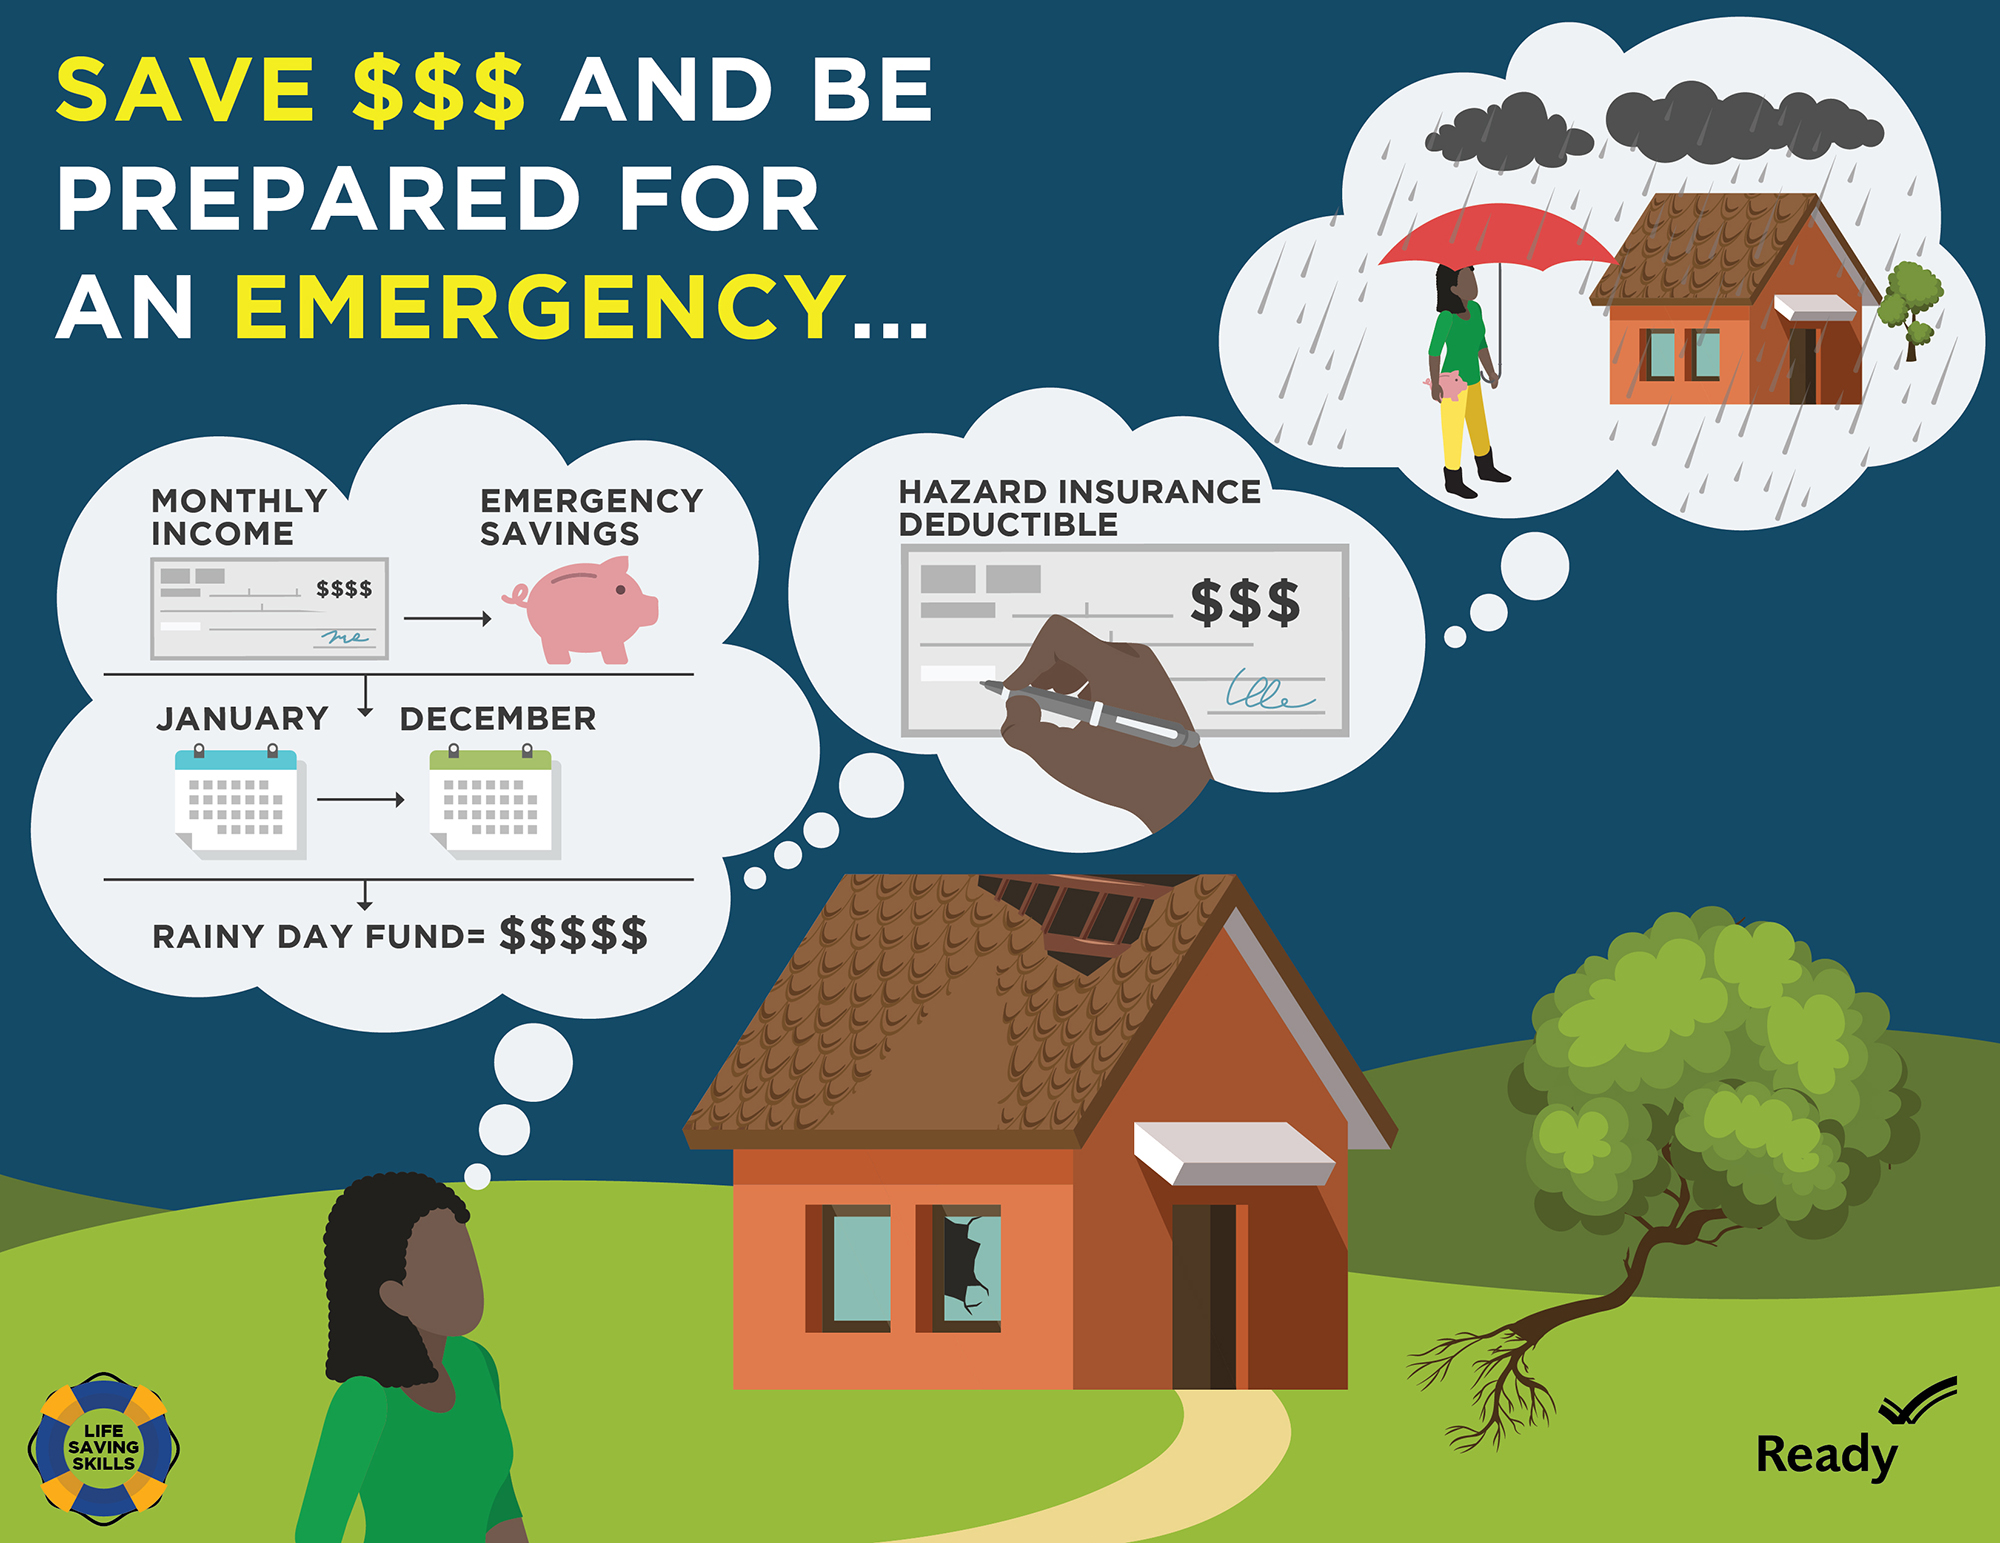 Graphic of woman standing in front of damaged home. Thought bubbles show her thinking about saving money for an emergency.